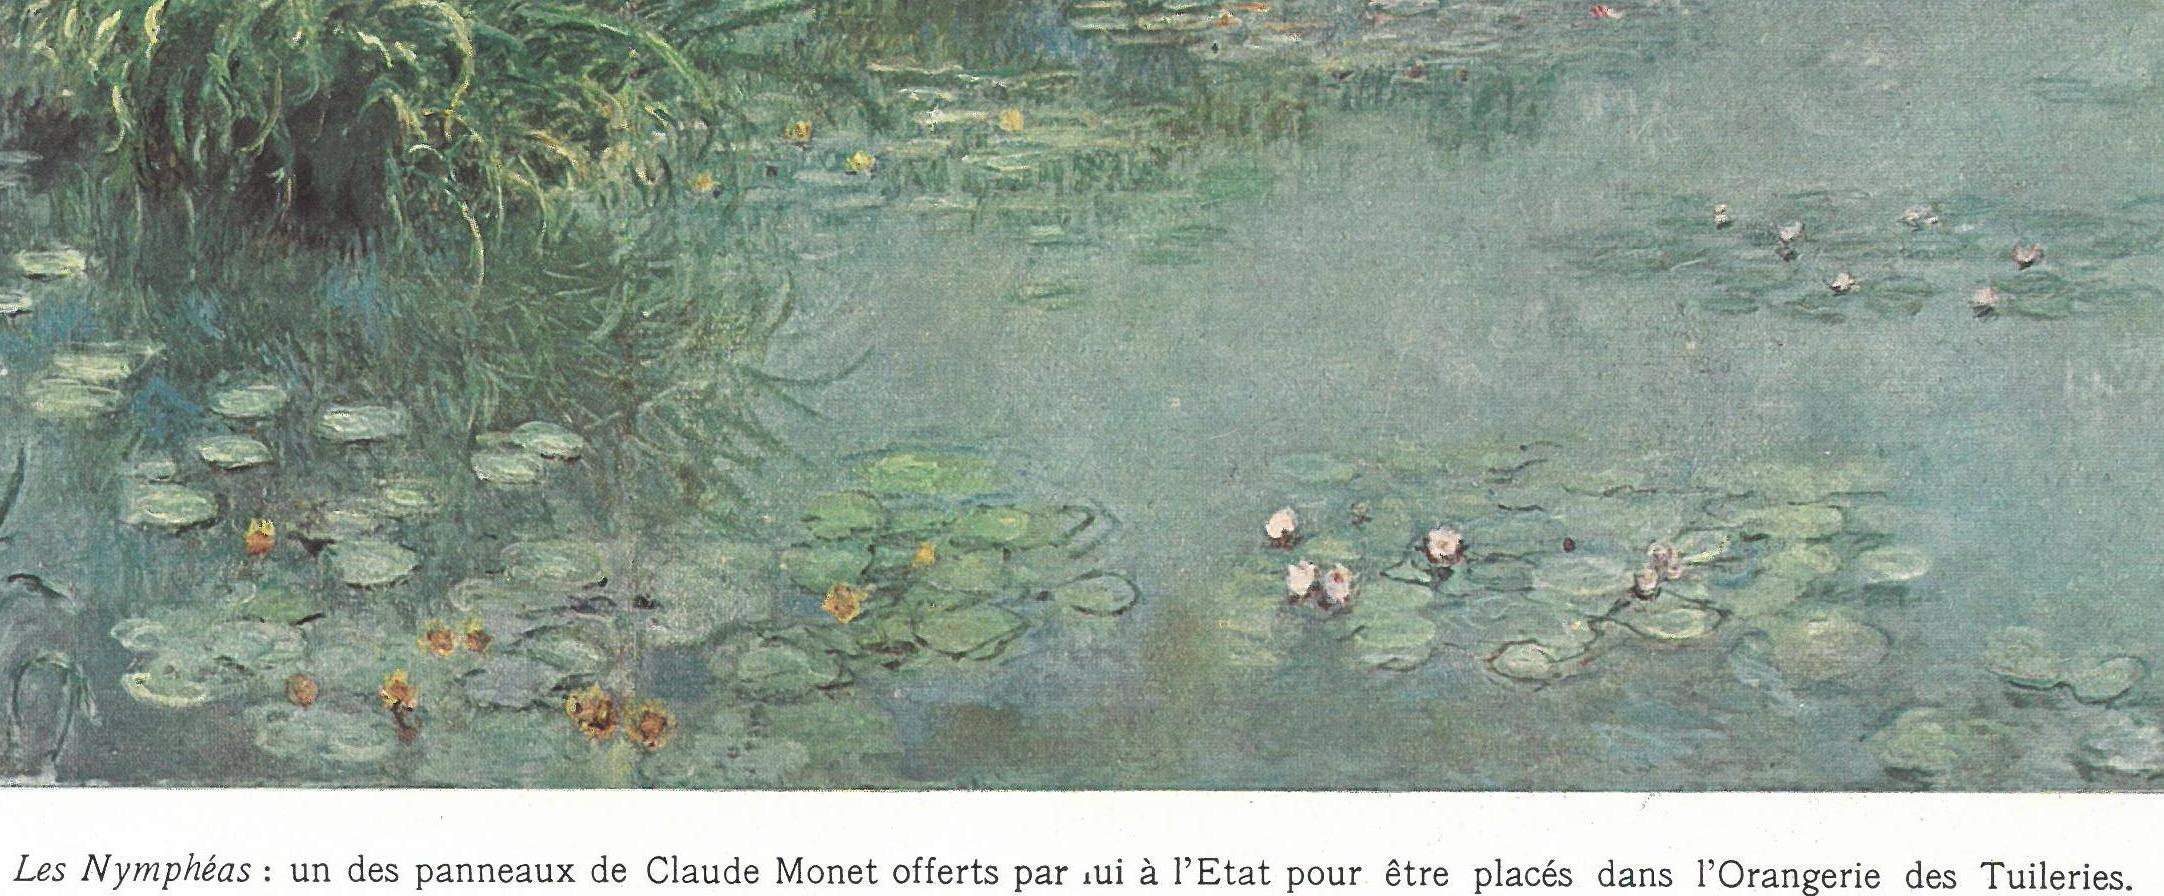 Photo of Monet's waterlily painting